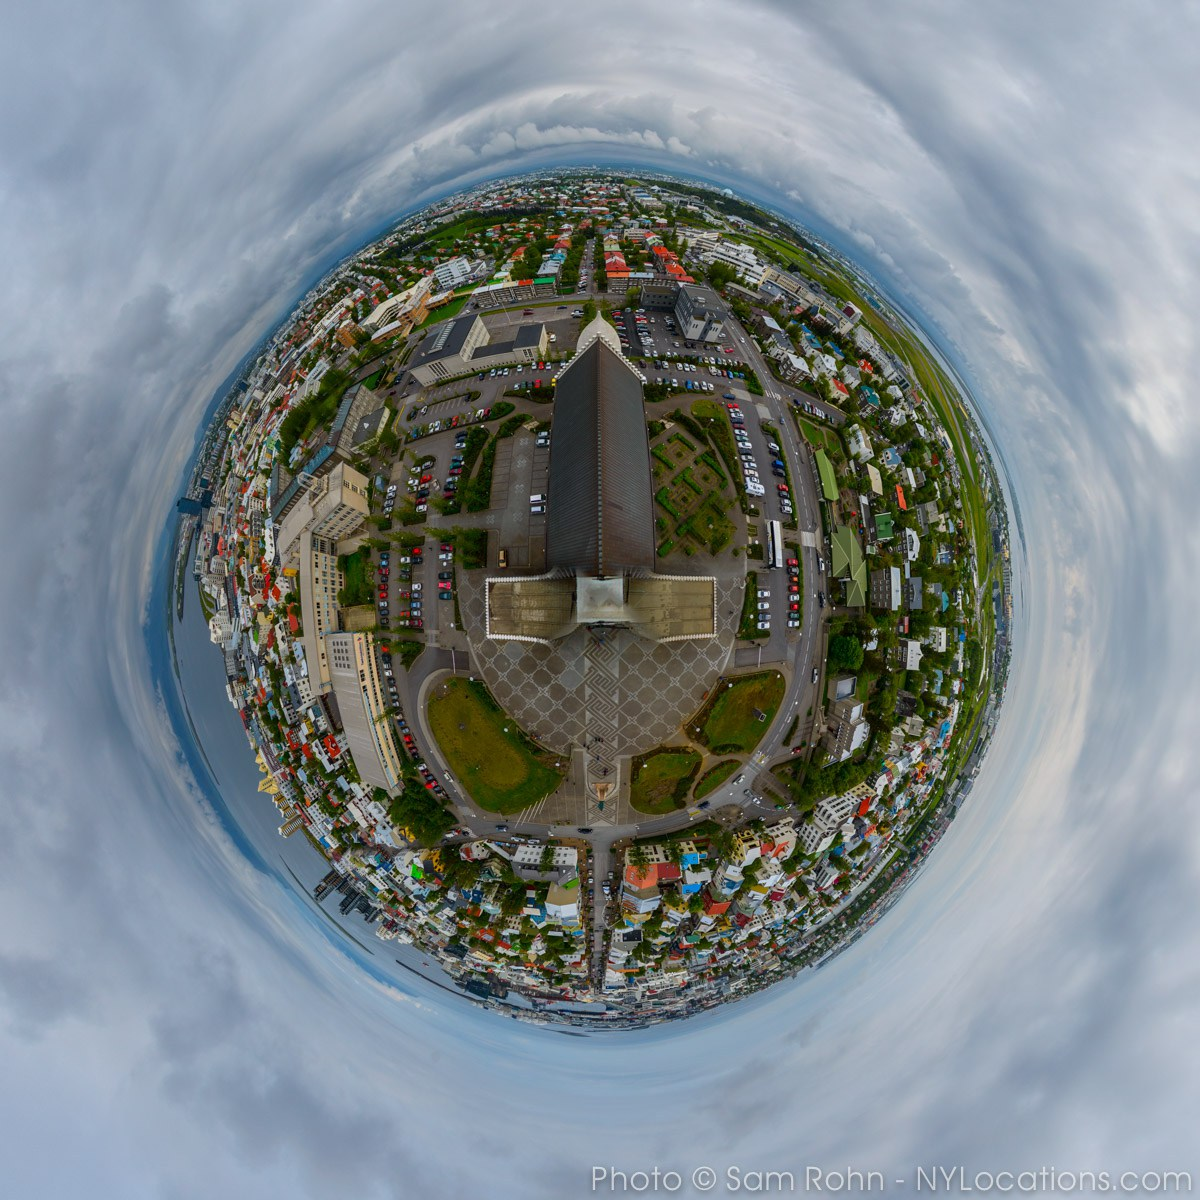 Create immersive photo experiences with Google Photo Cool 360 photo panoramas made easy